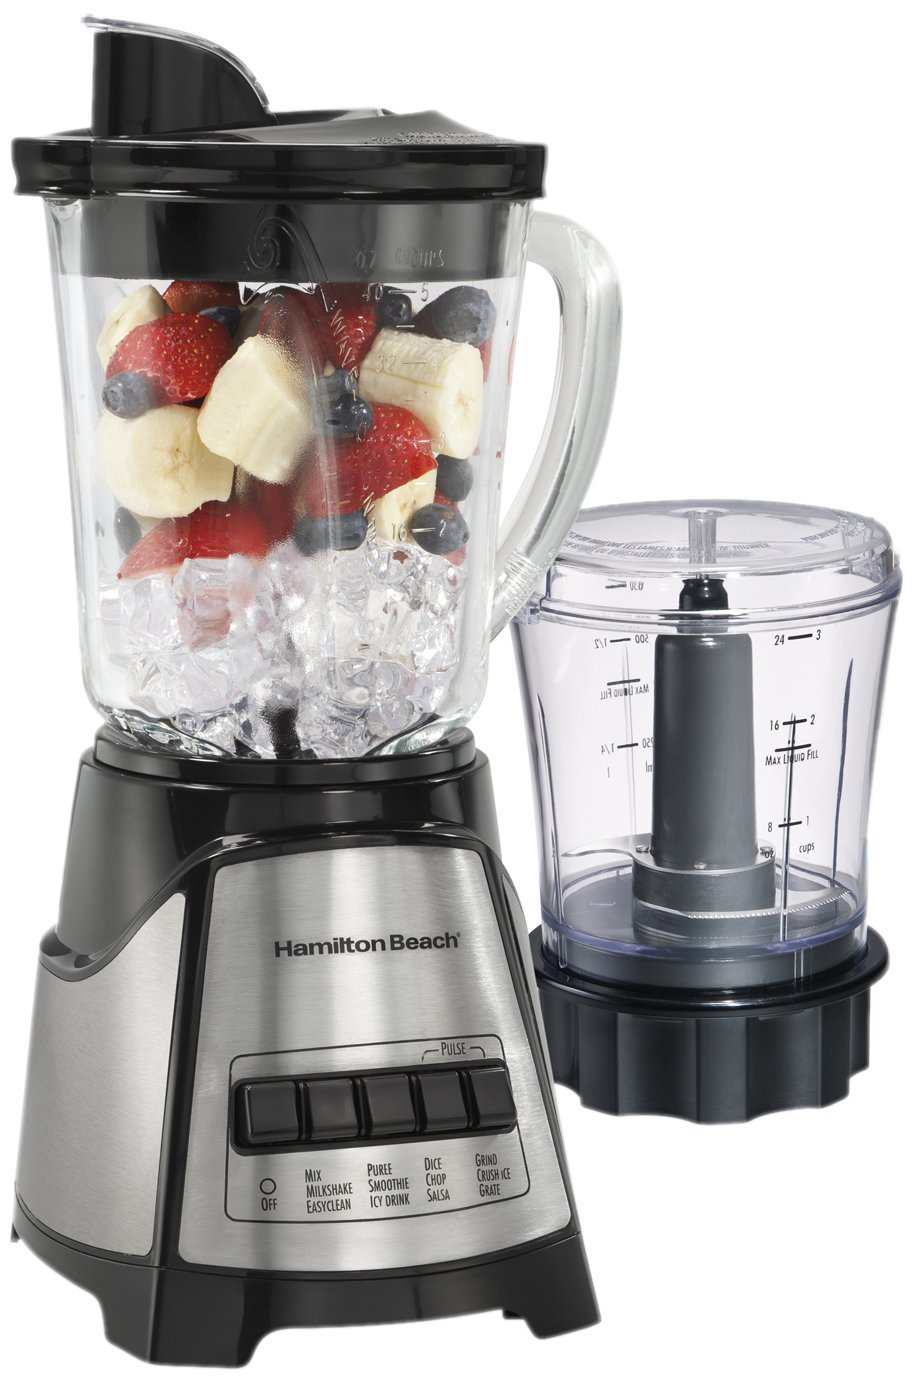 Top Rated Blenders Under 100 Blender Buying Guide